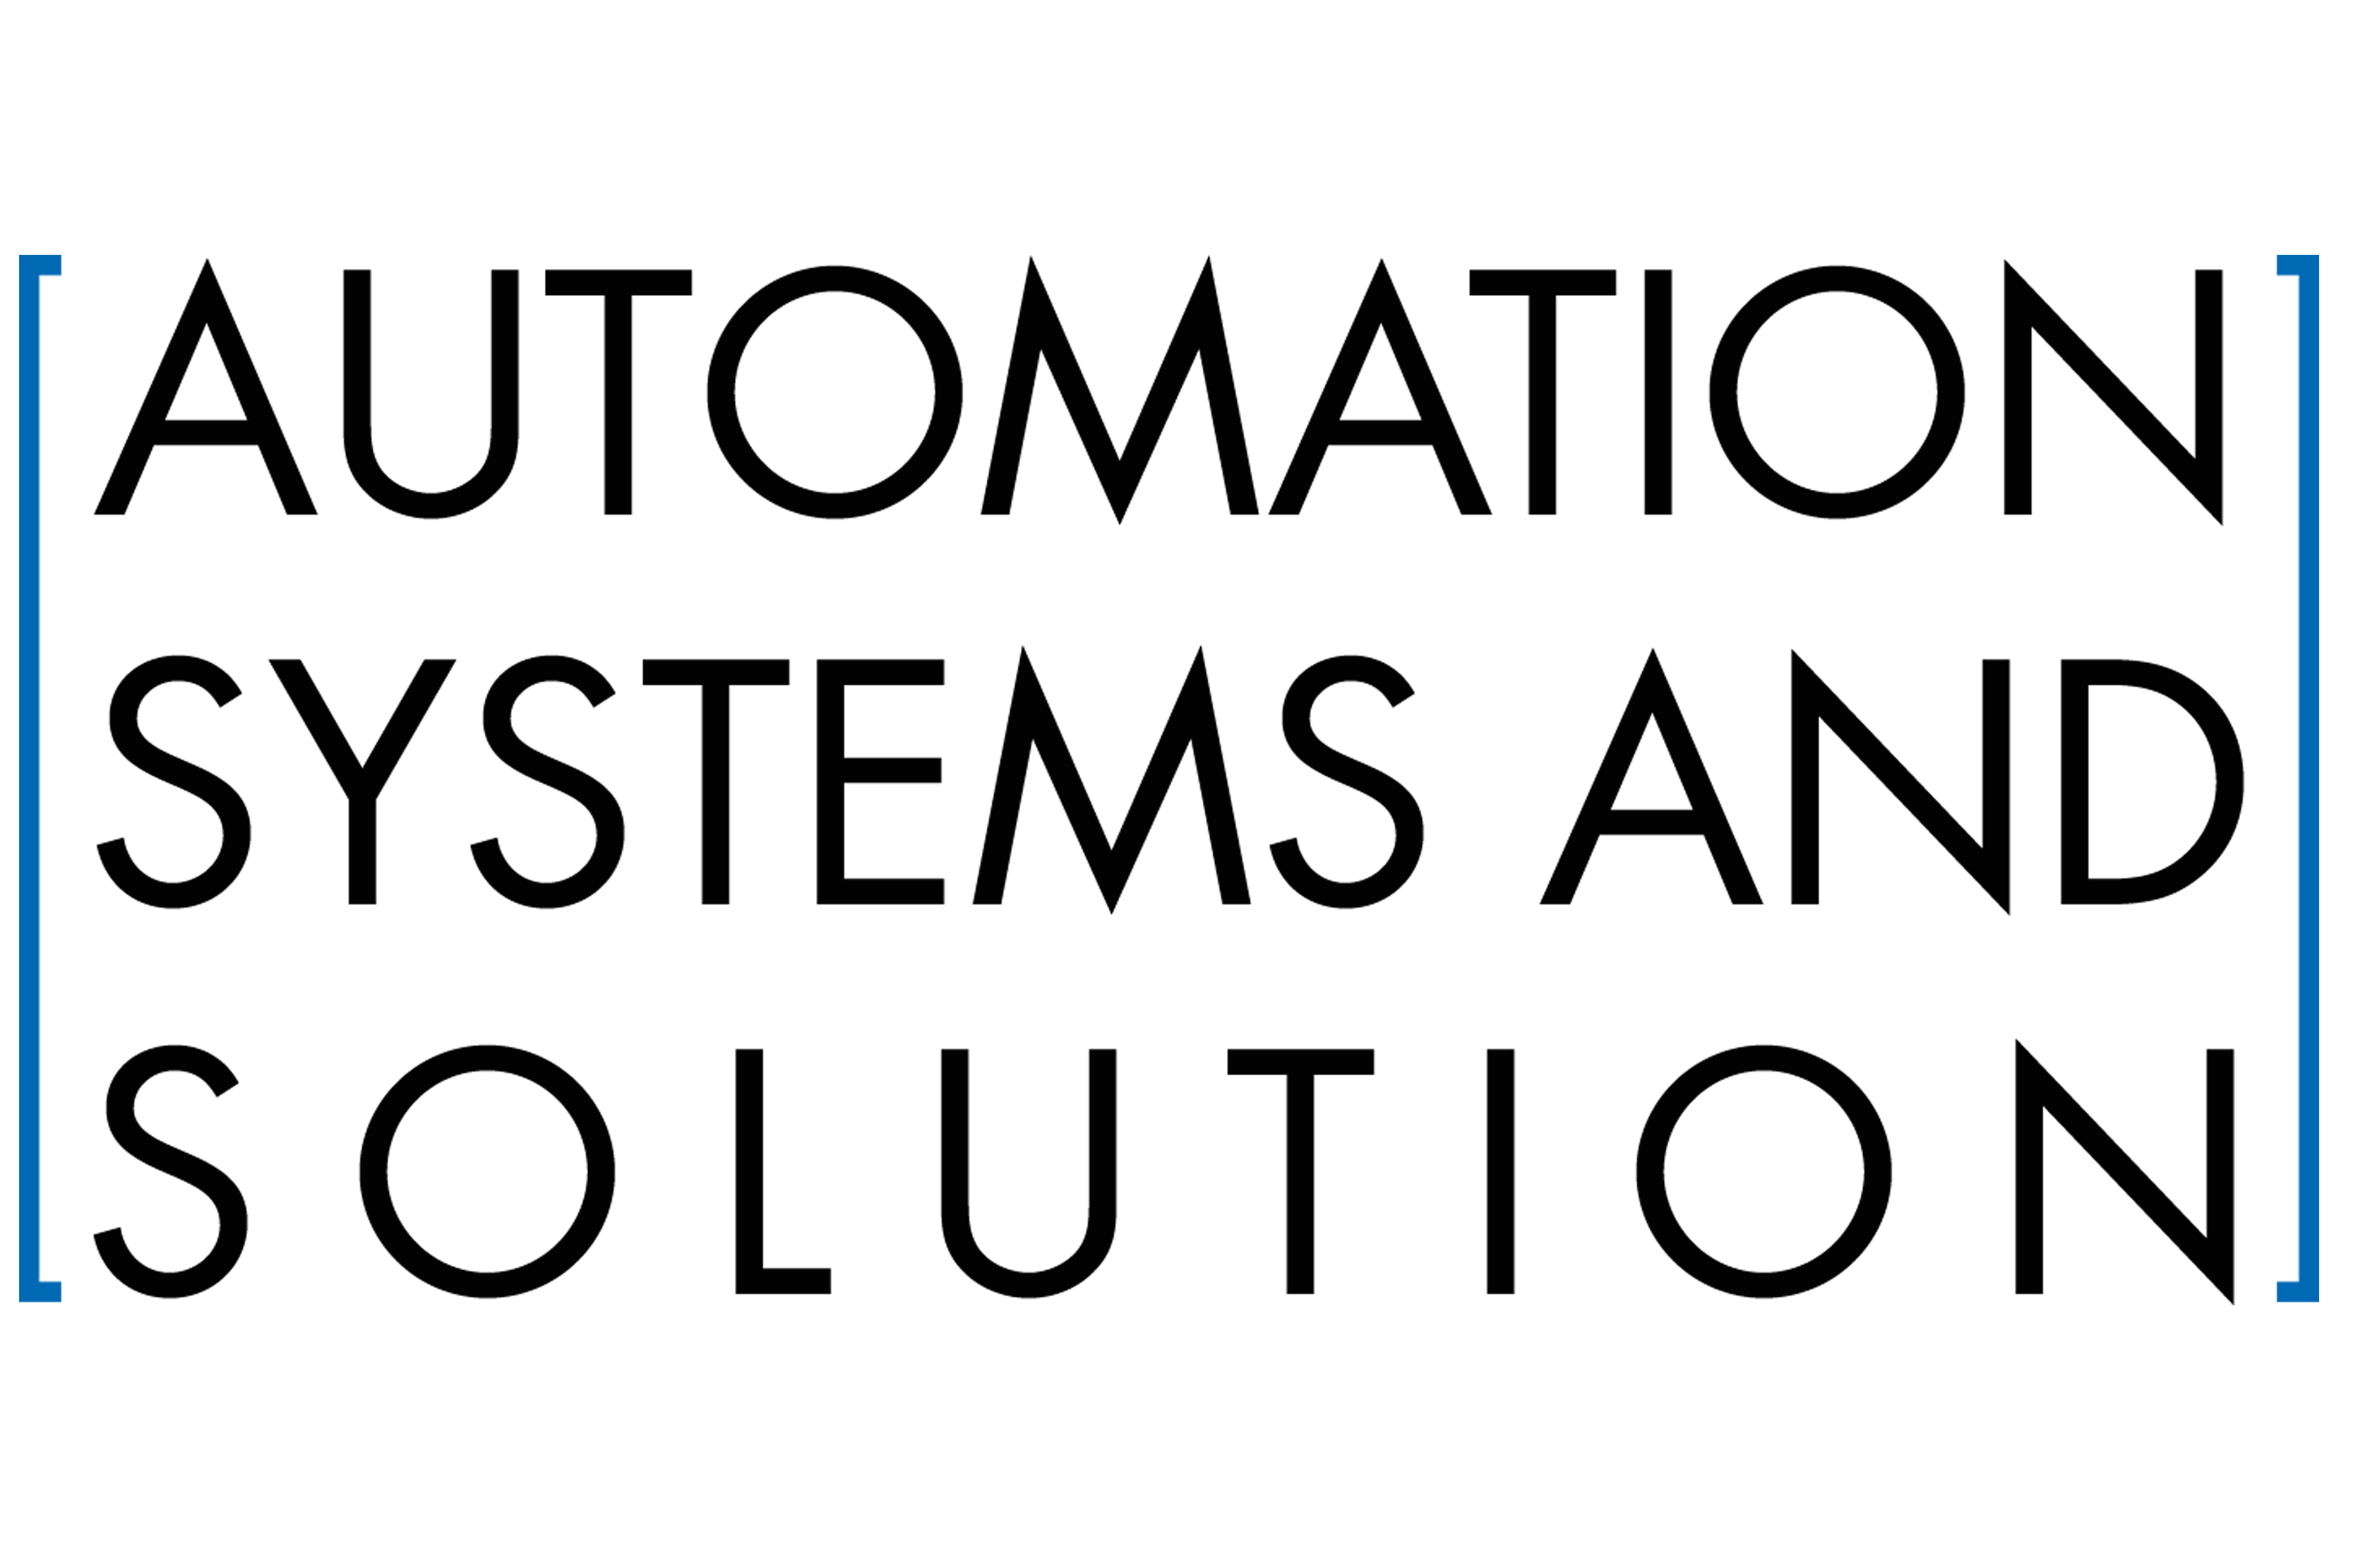 ASS - Automation, Systems and Solition